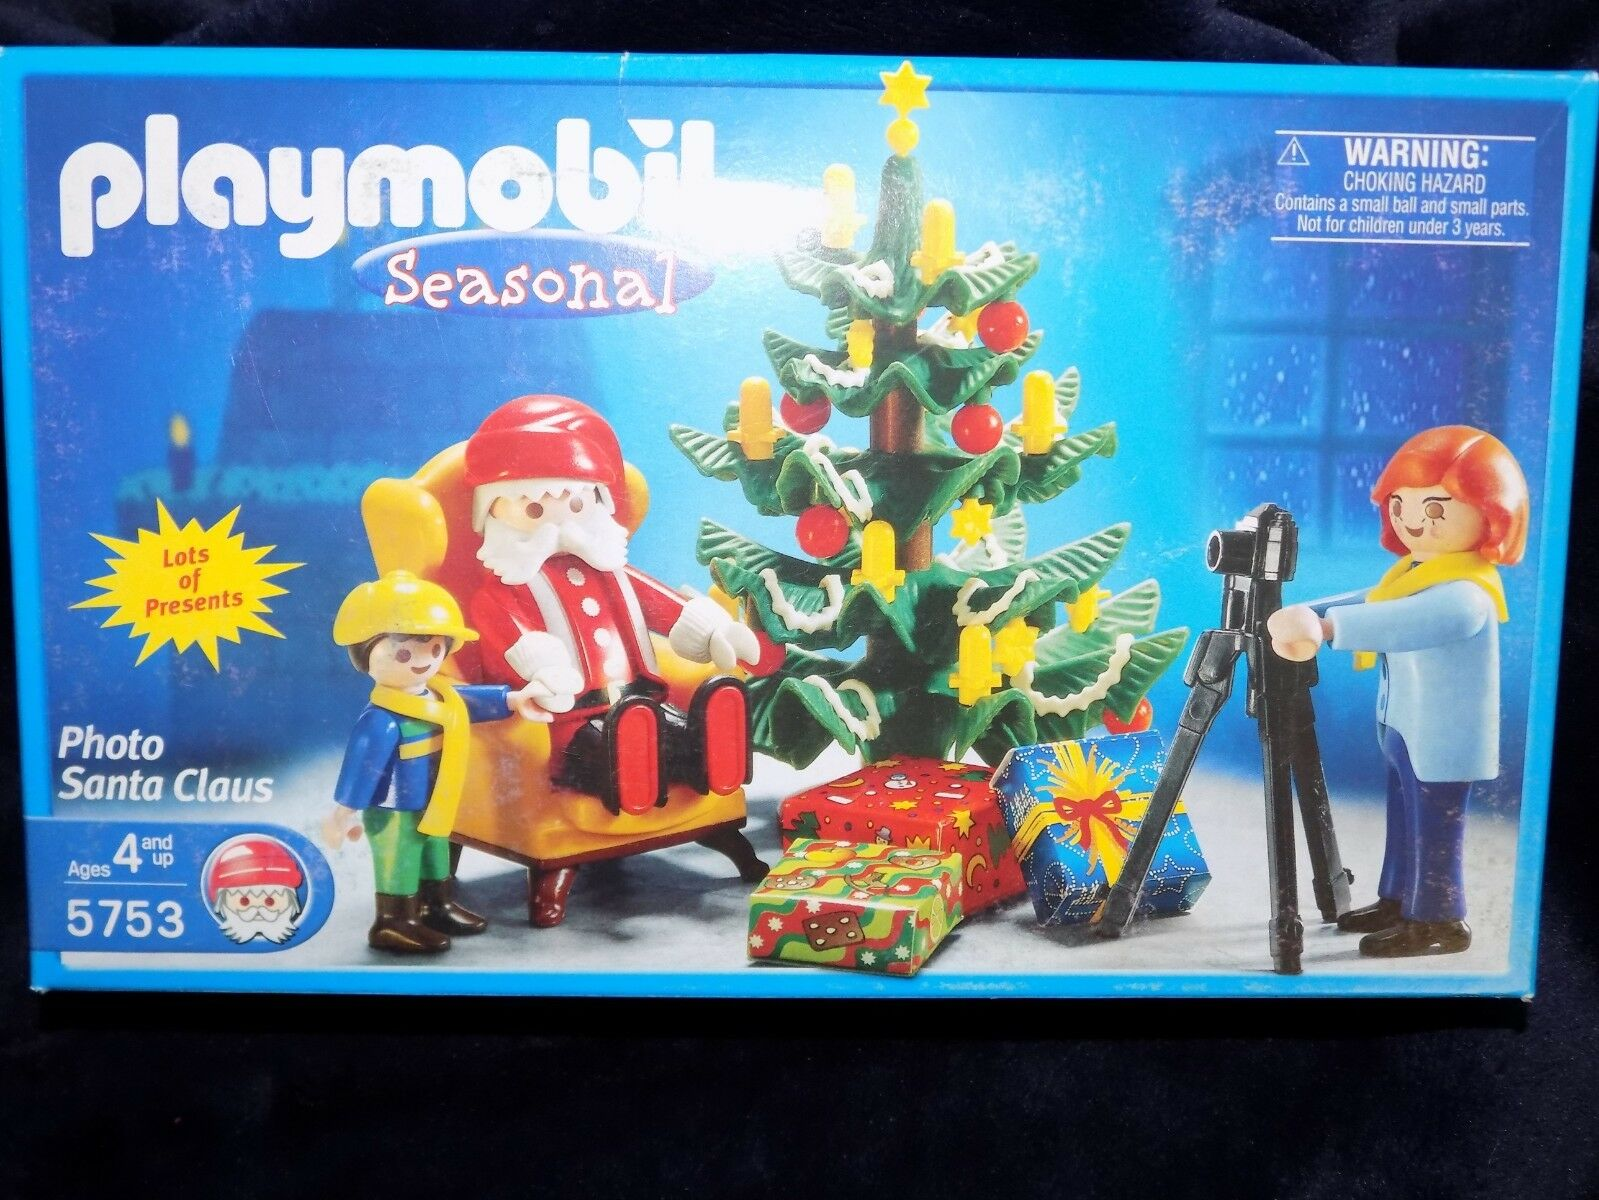 NEW Sealed 2003 PLAYMOBIL Christmas Picture Photo with Santa Claus Set 5753